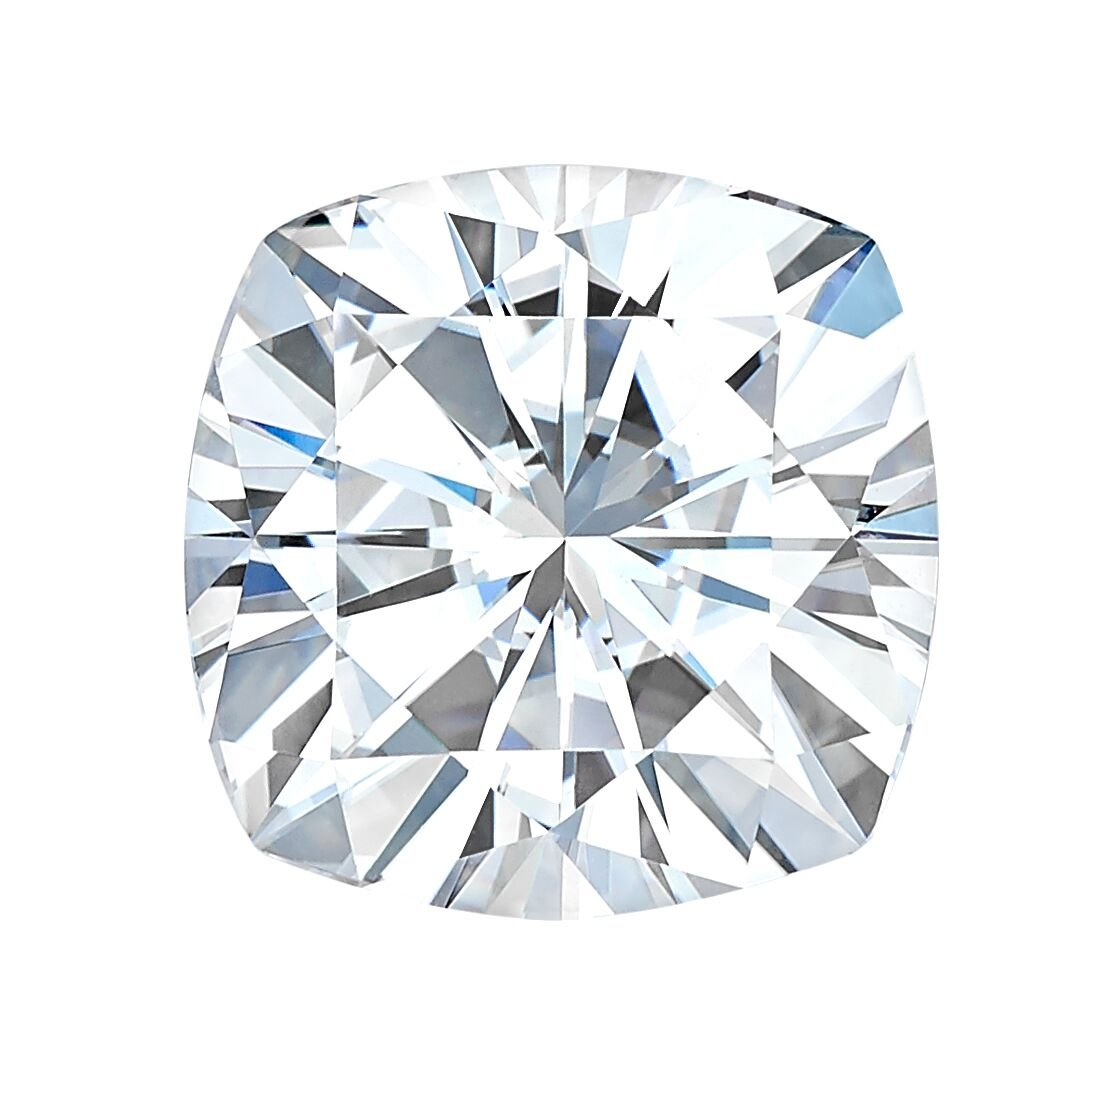 7.5 MM Cushion Cut Forever One® Moissanite by Charles & Colvard 81 Facets - Very Good Cut (1.80ct Actual Weight, 2.00ct Diamond Equivalent Weight) by Forever One® (Image #1)